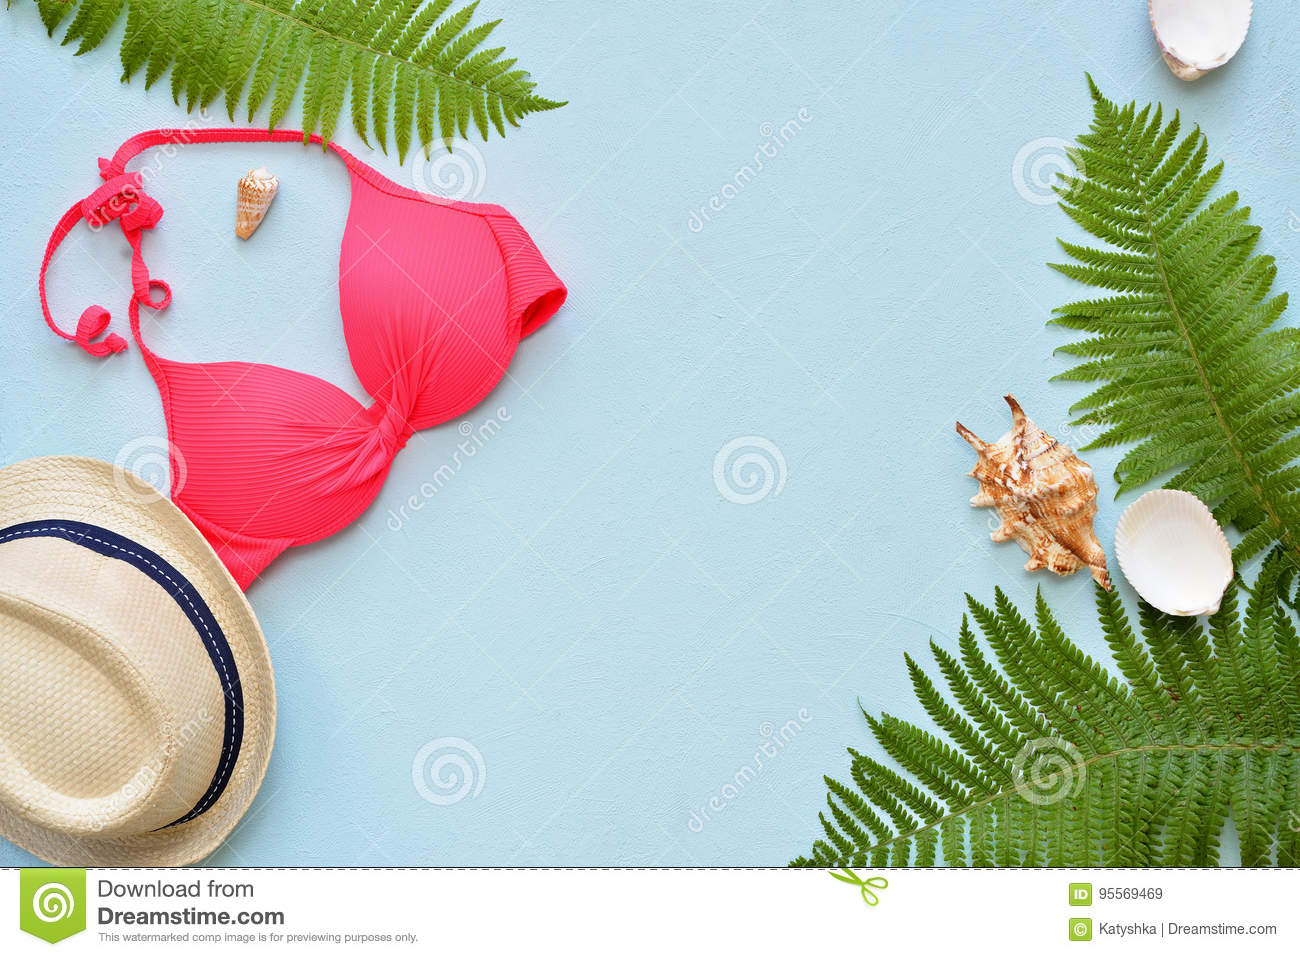 Female summer bikini swimsuit and accessories collage on blue with palm branches, hat and sunglasses.